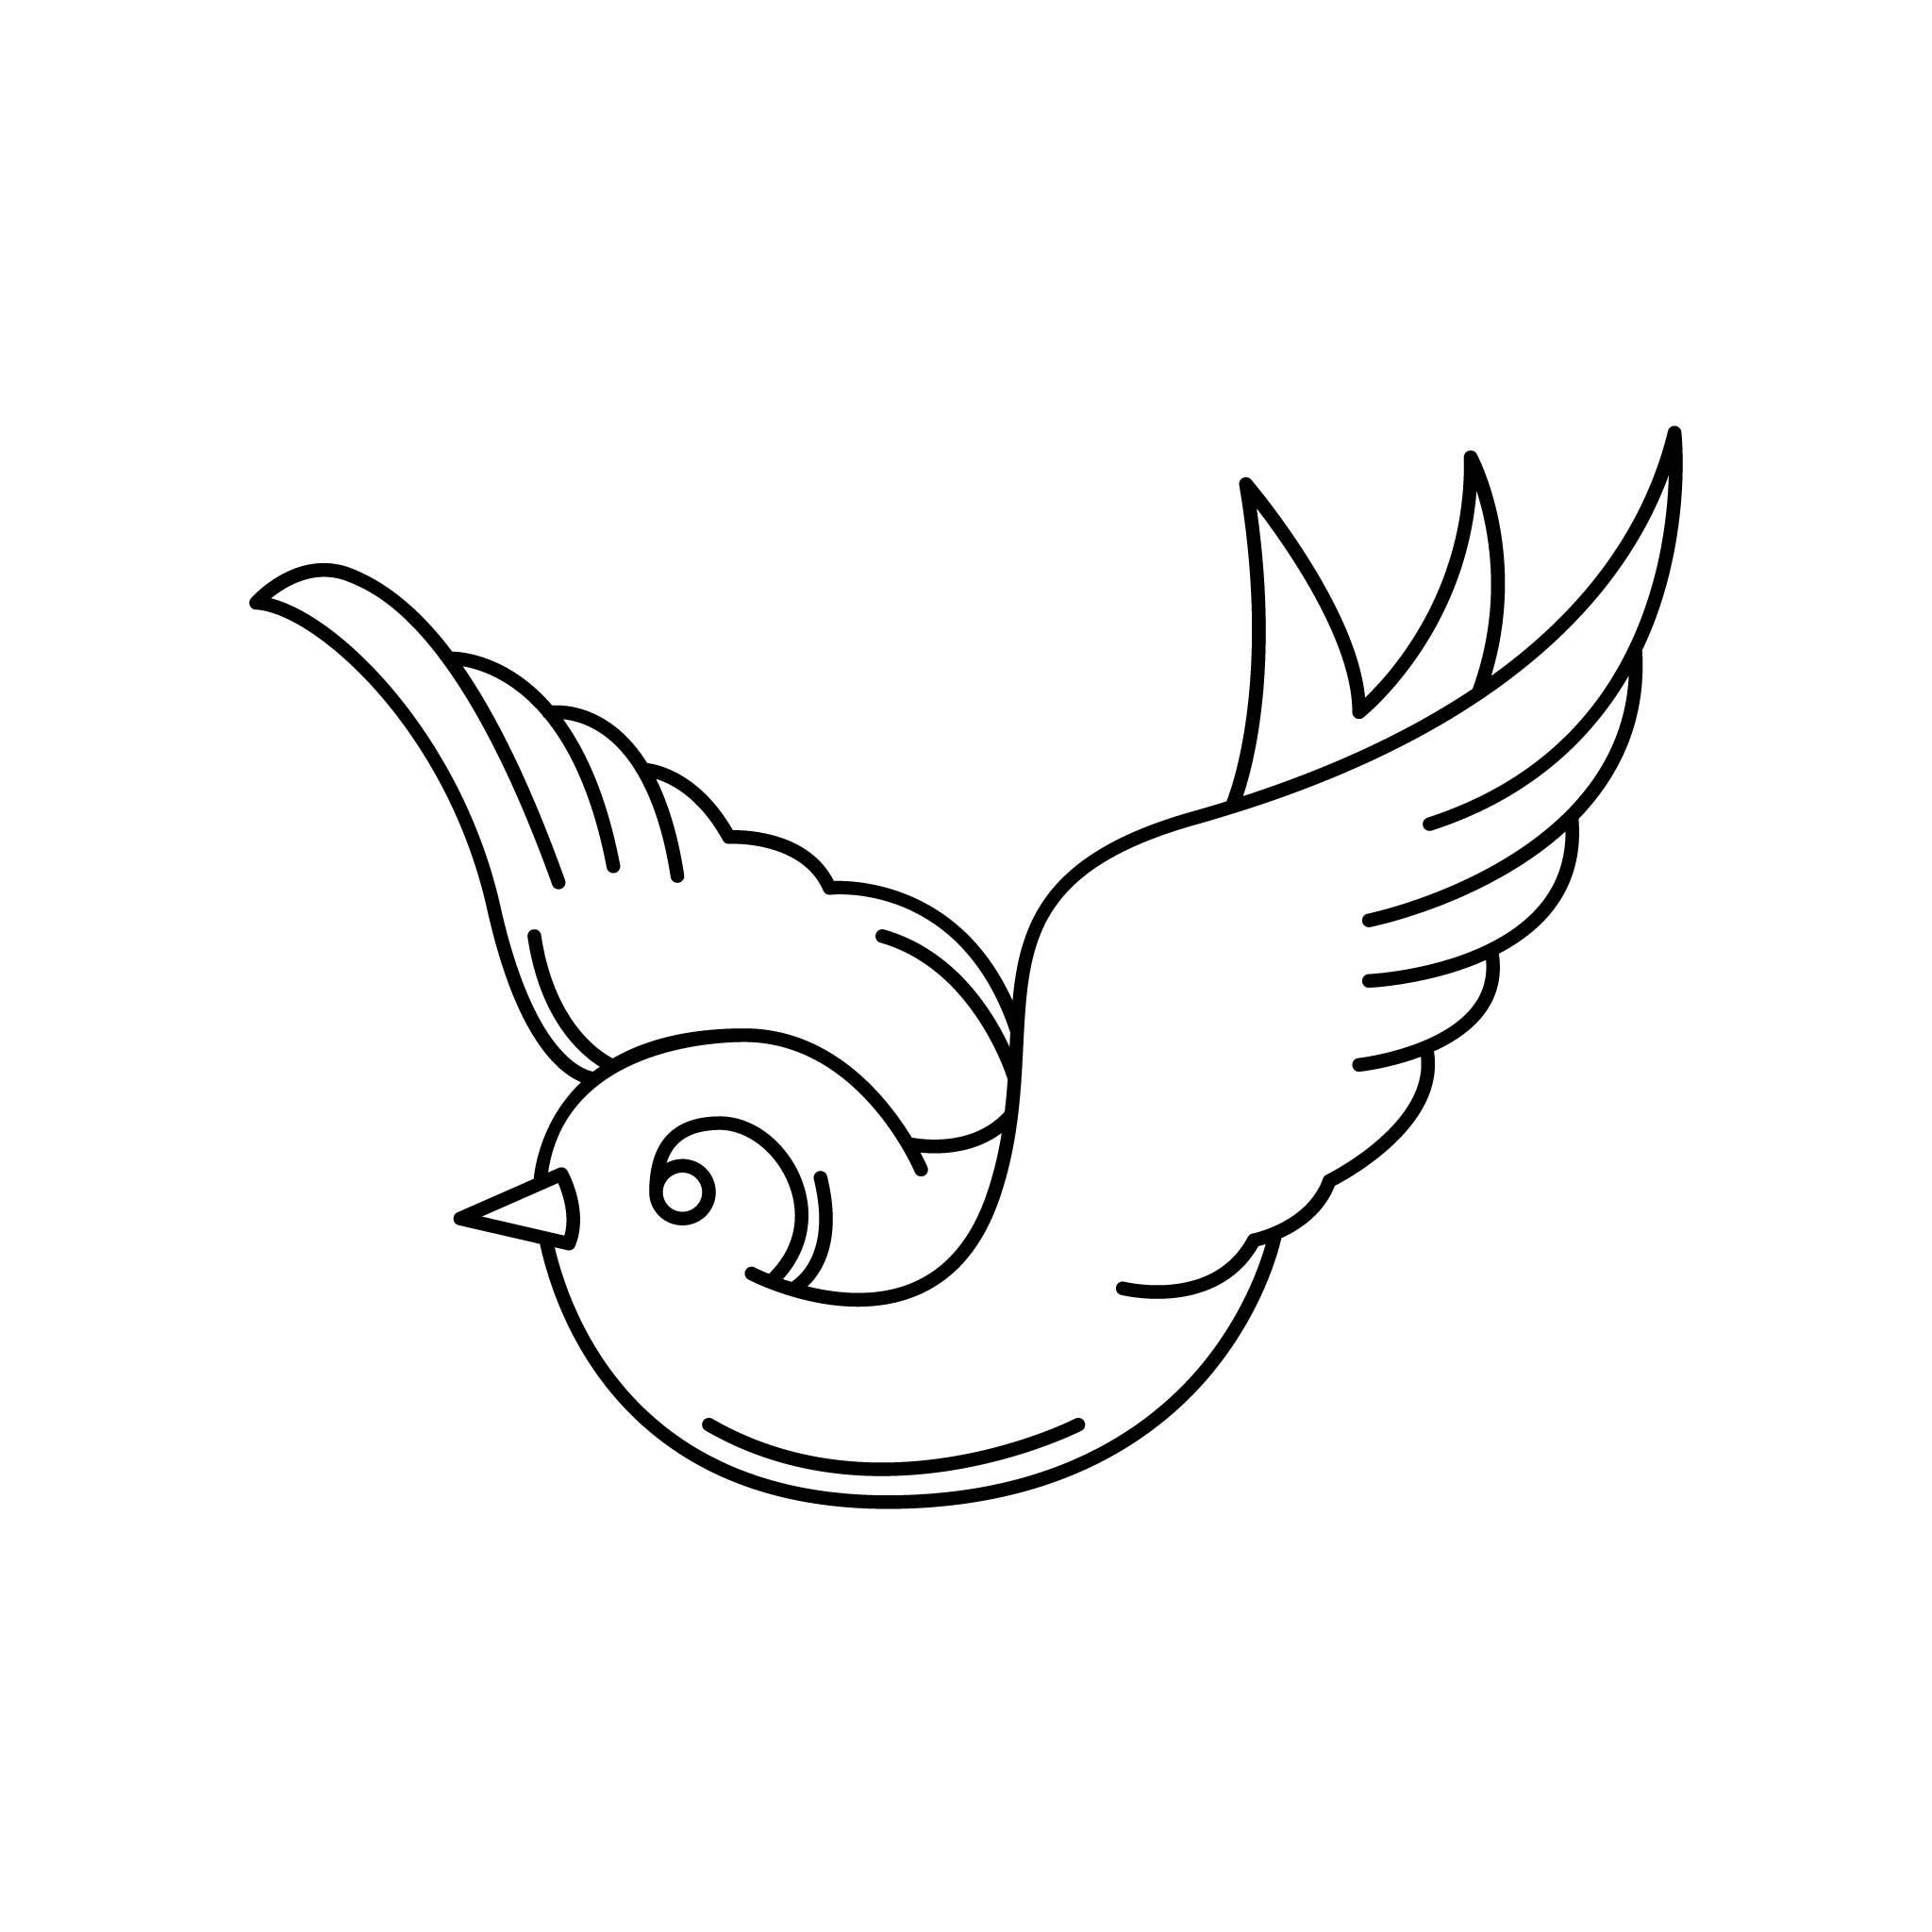 Bird_Min Temporary Tatoo Design. Tags: Minimal, Black and White, Traditional, Animals